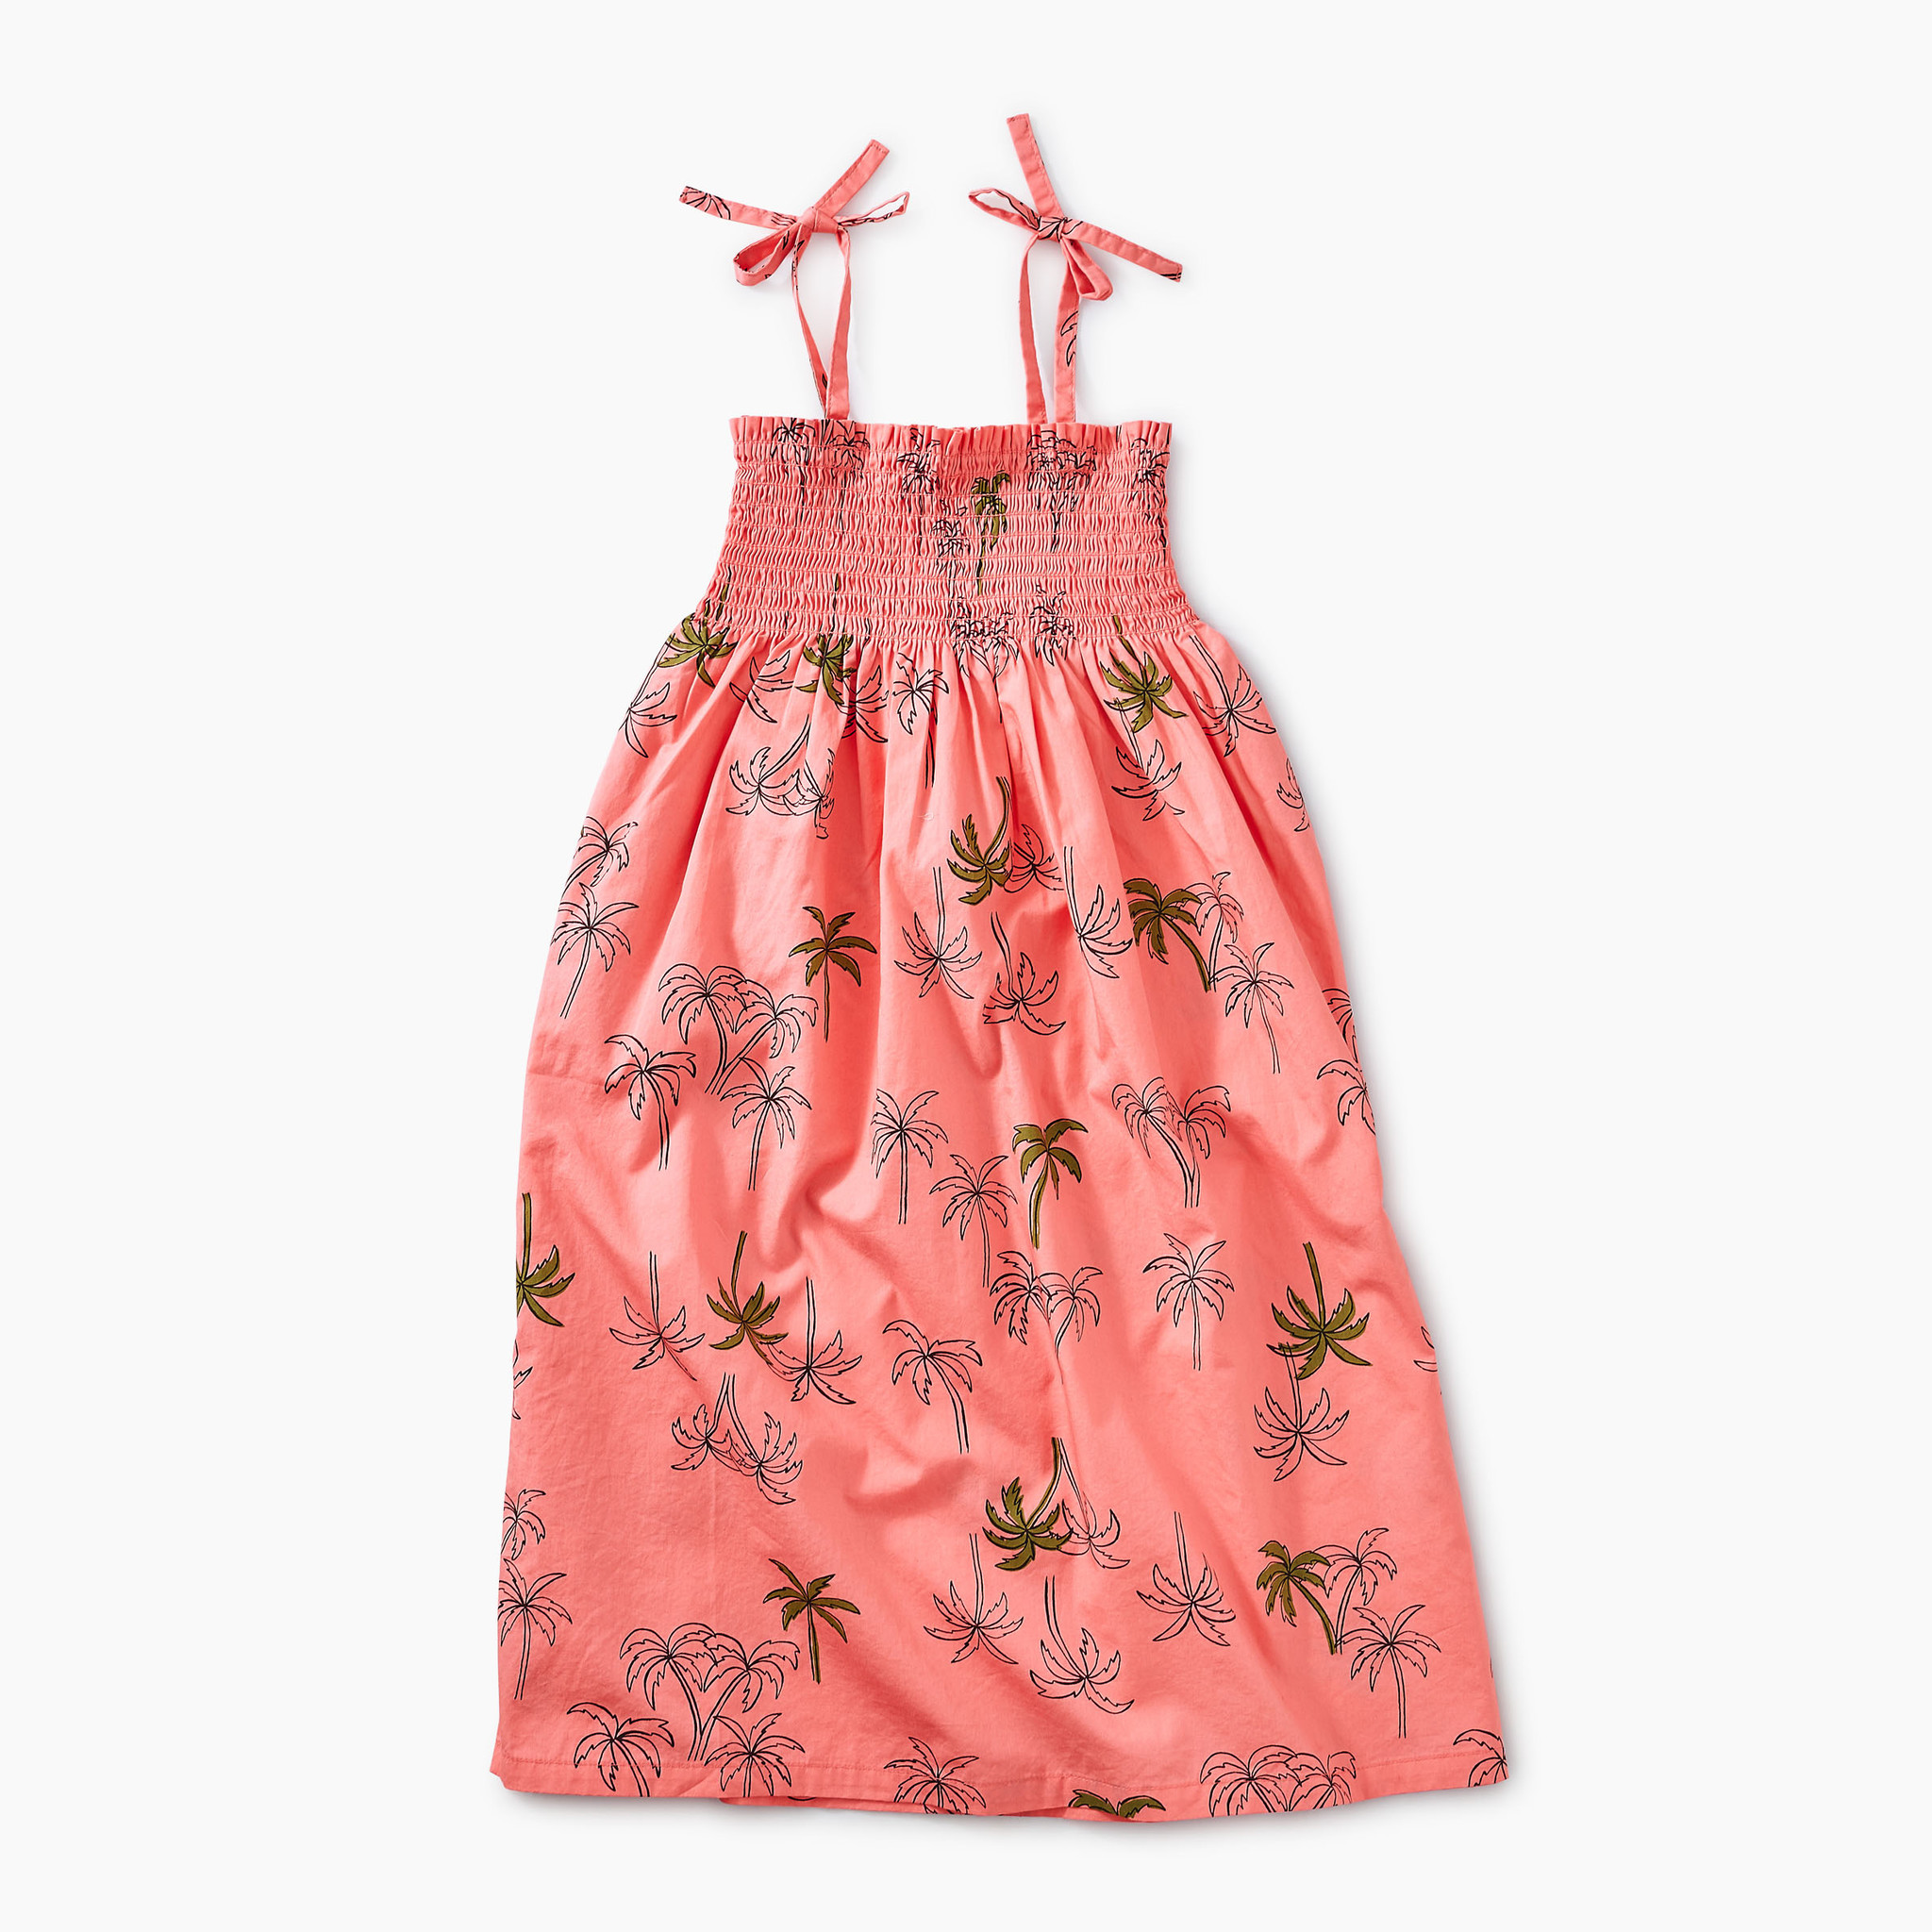 Tea Collection Pop Palm Trees Midi-Length Dress